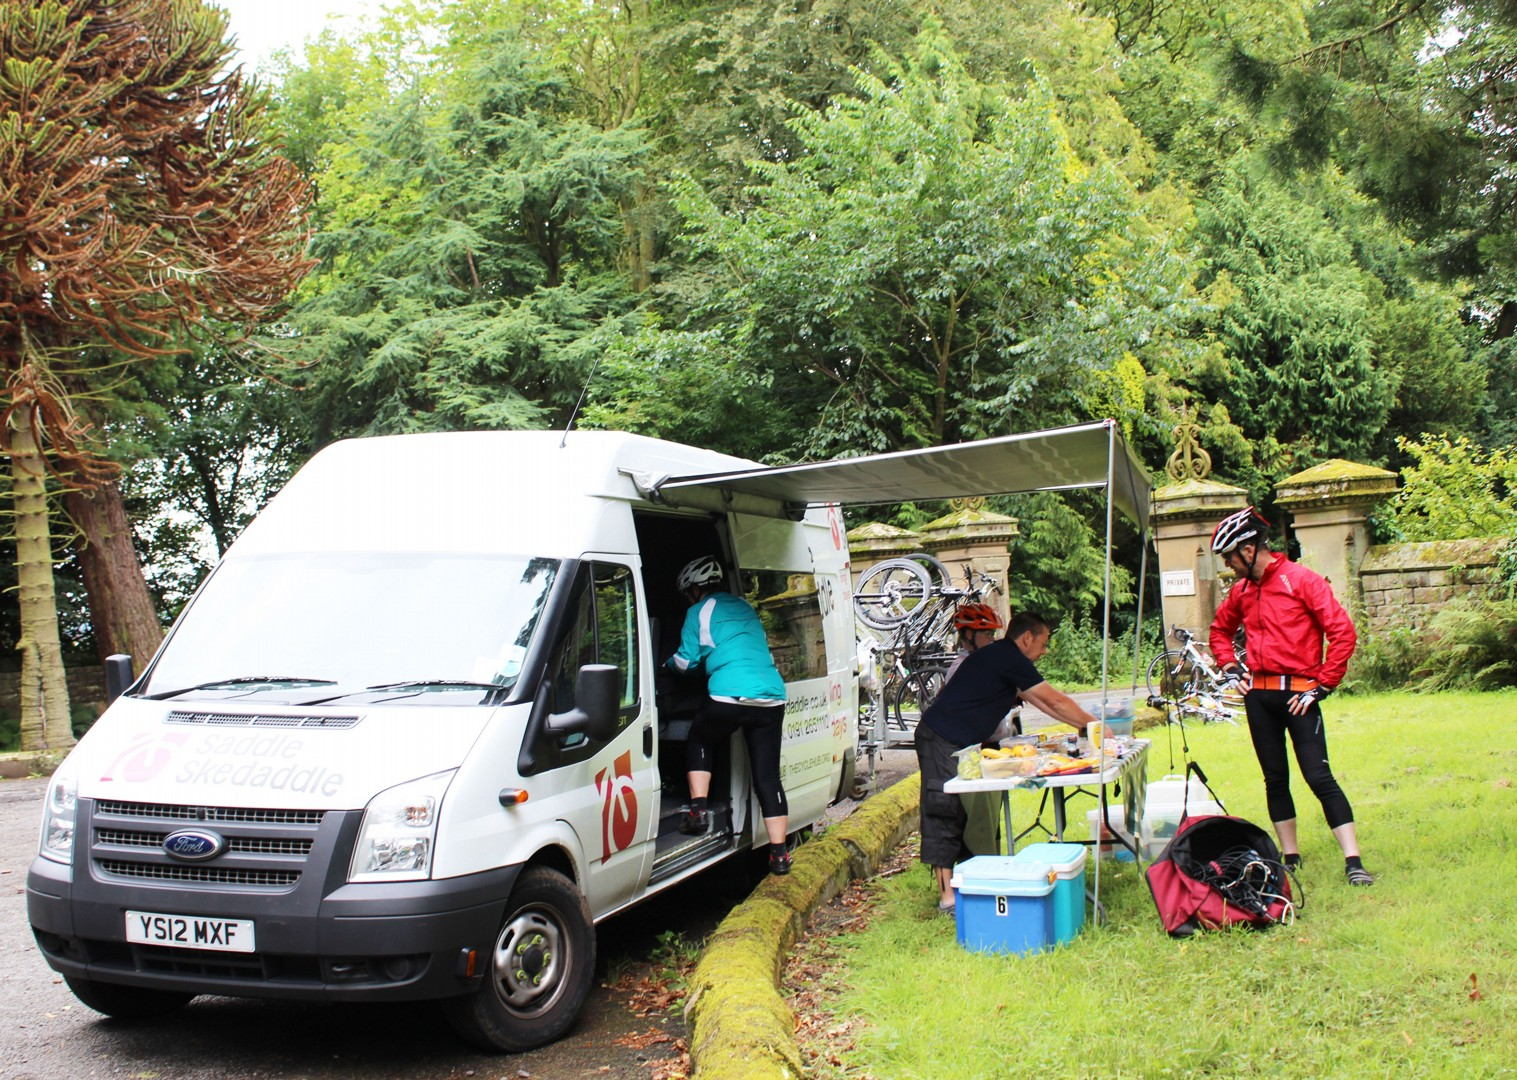 skedaddle-support-van-family-cycling-holiday.jpg - UK - Hadrian's Cycleway 4 Day - Supported Family Cycling Holiday - Family Cycling